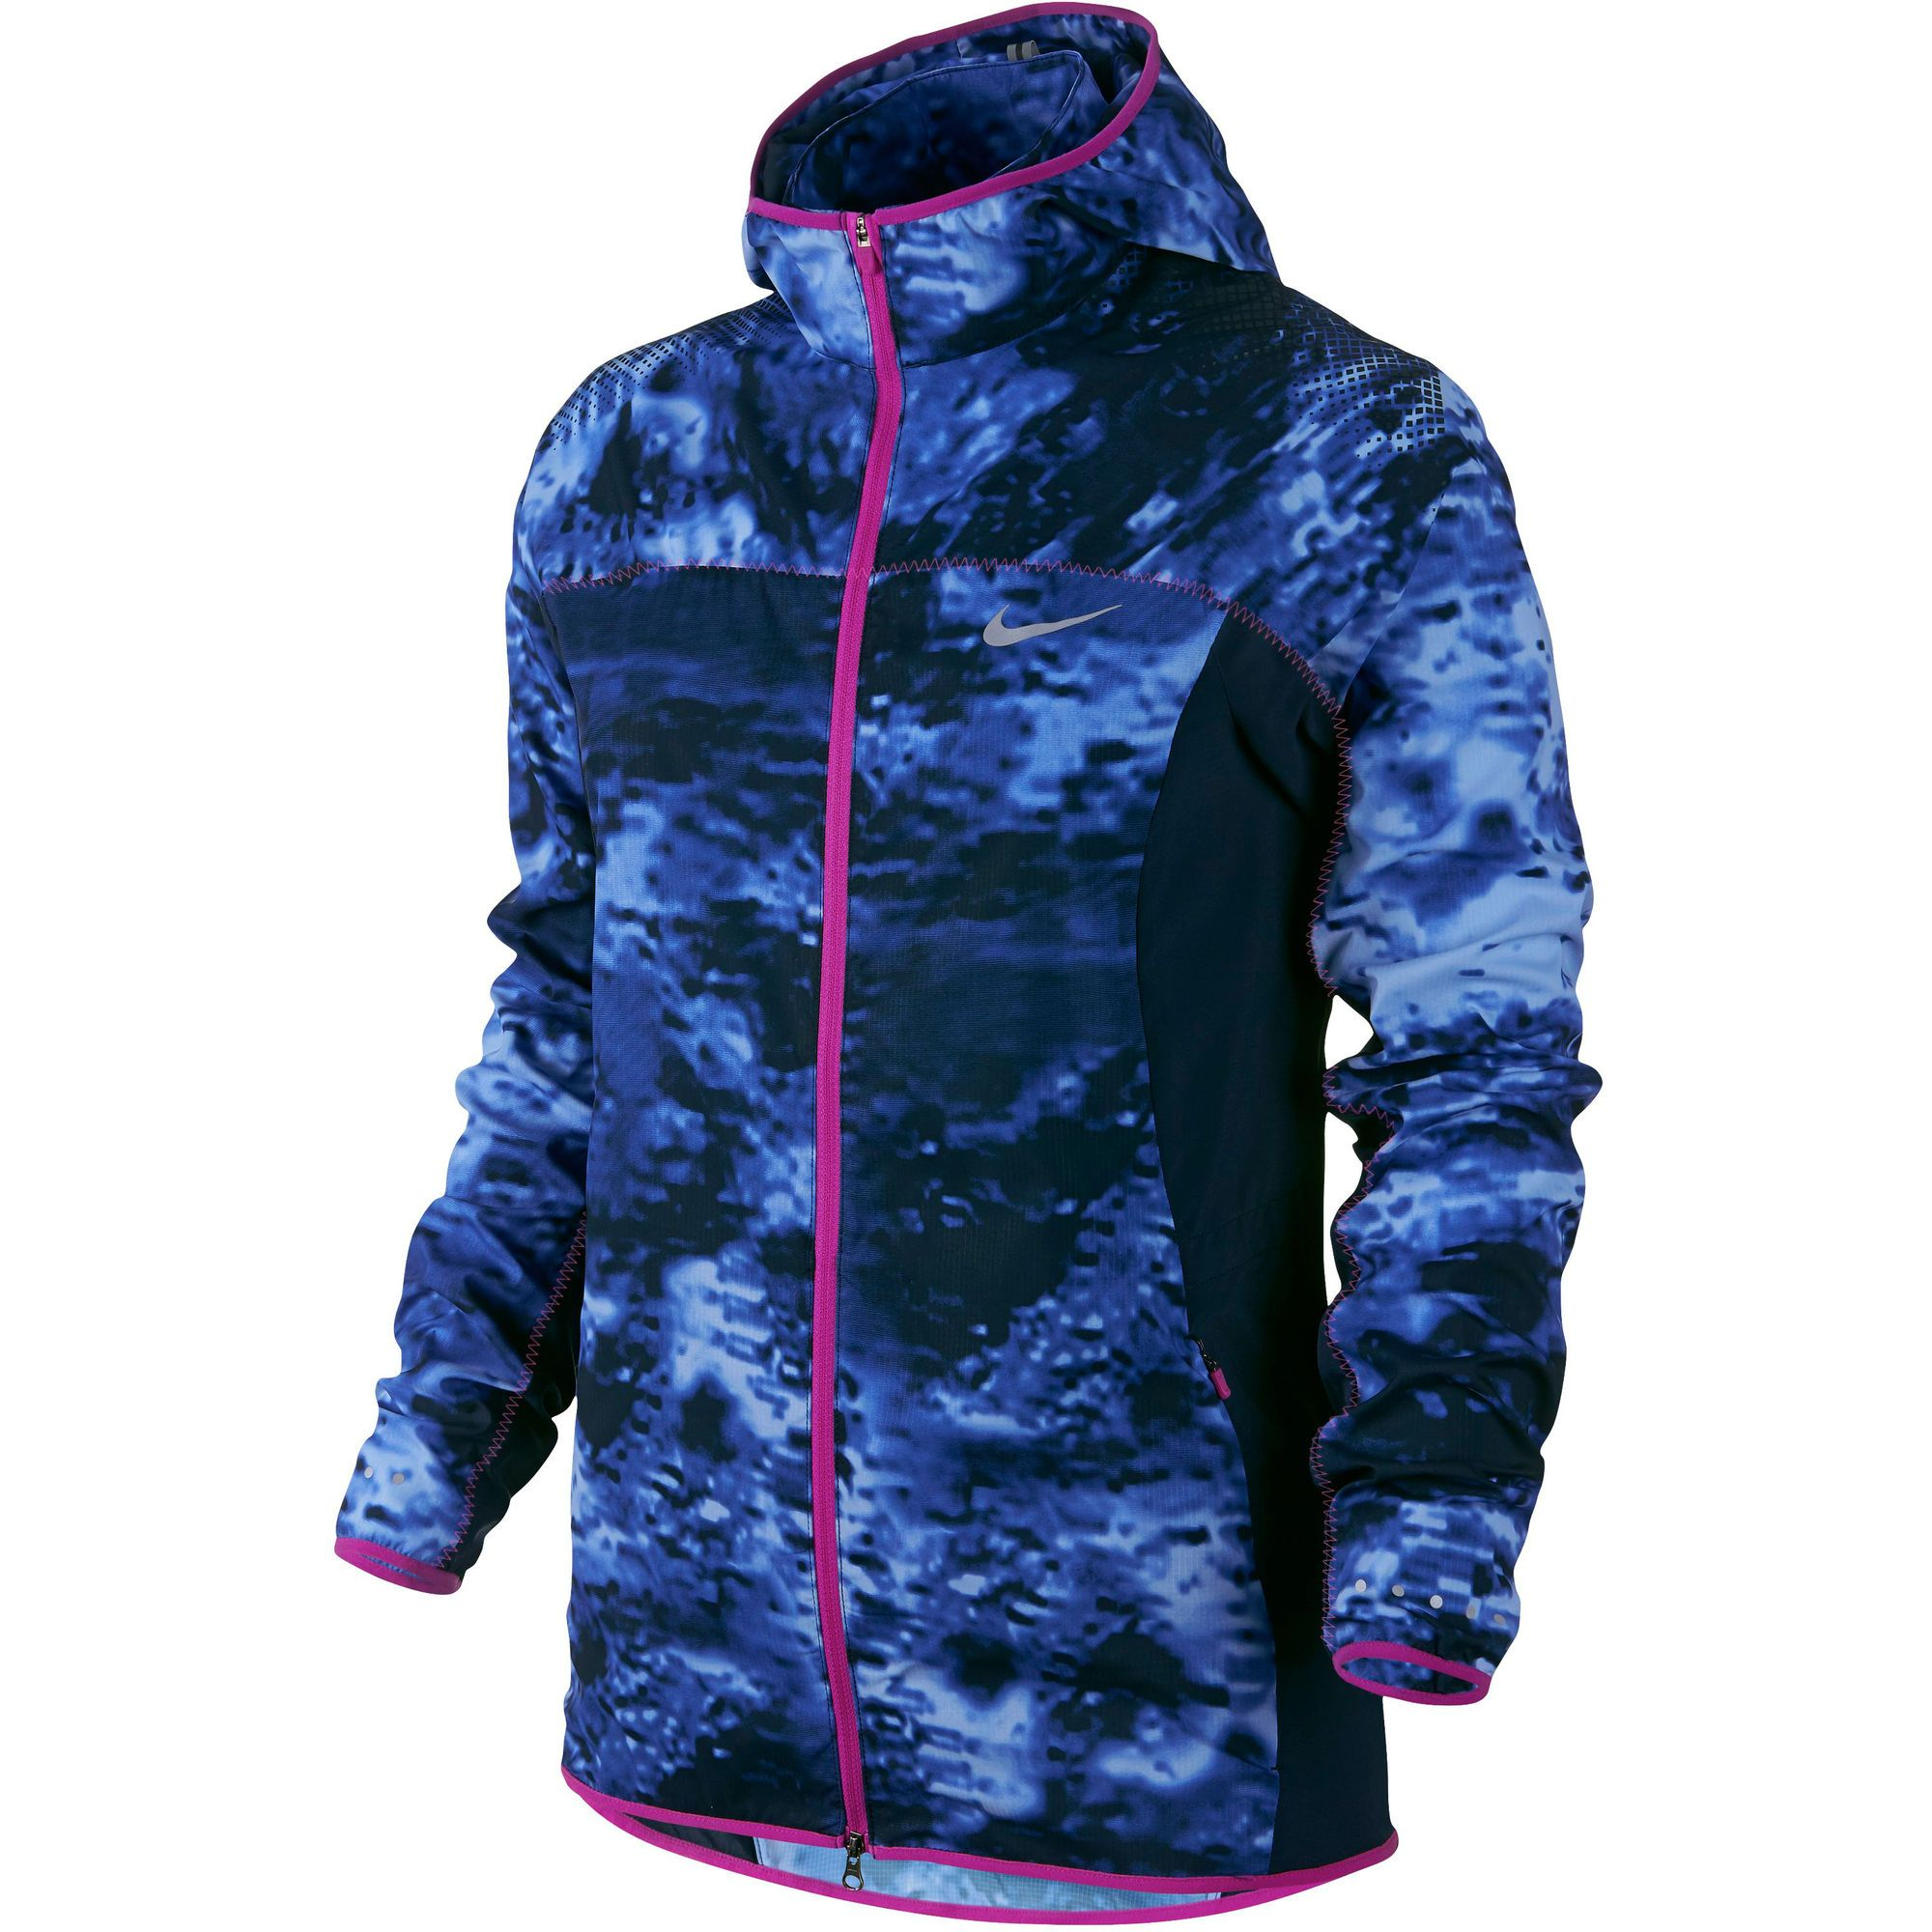 Wiggle   Nike Women's Printed Trail Kiger Jacket - SP15   Running Windproof Jackets